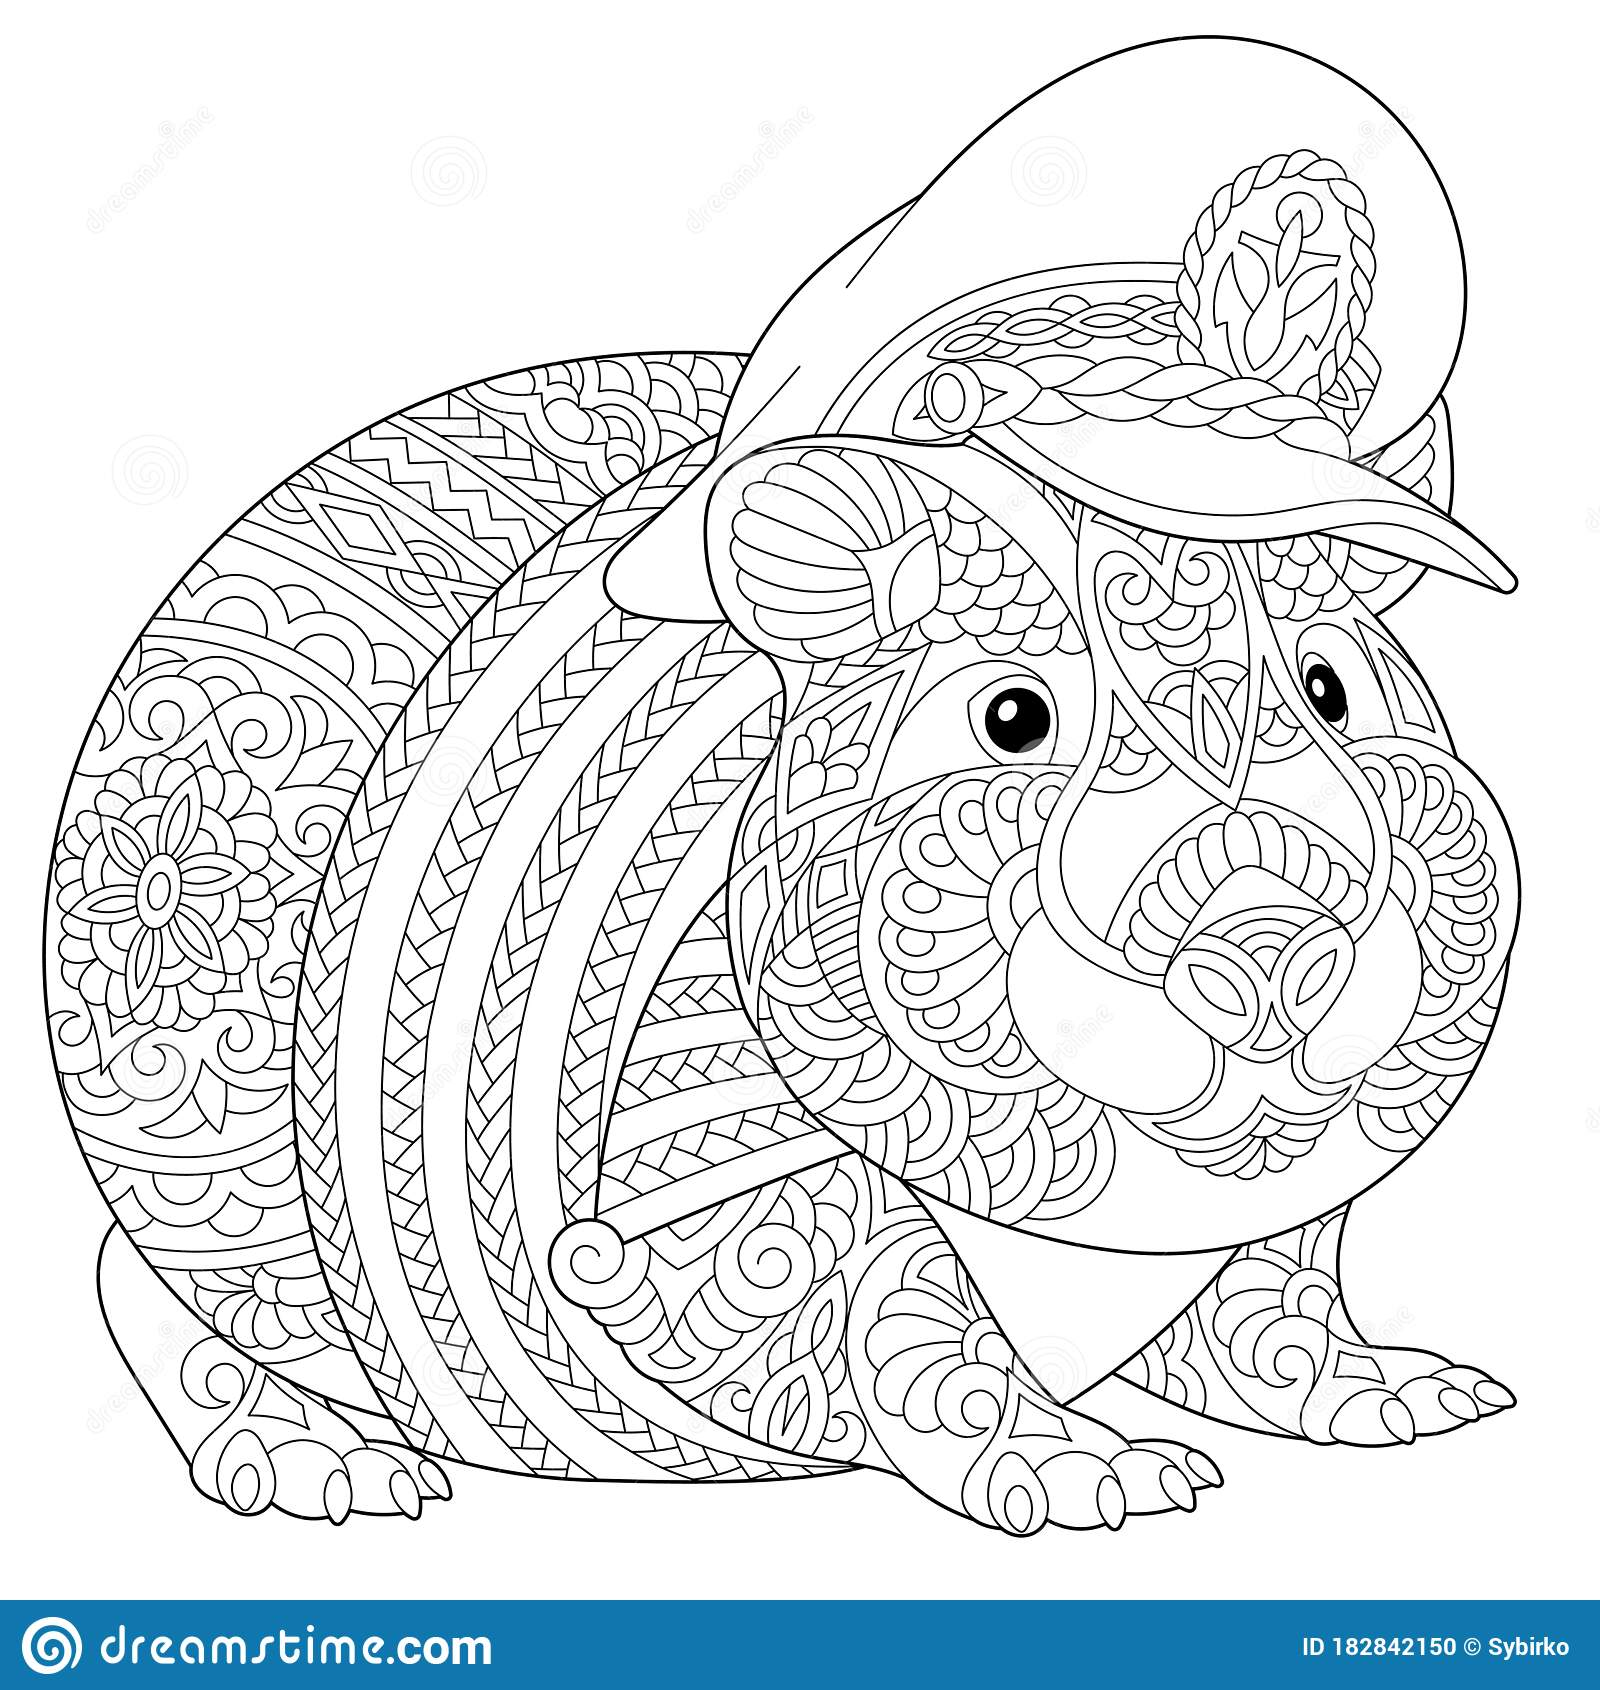 Coloring Page With Hamster Or Guinea Pig Stock Vector